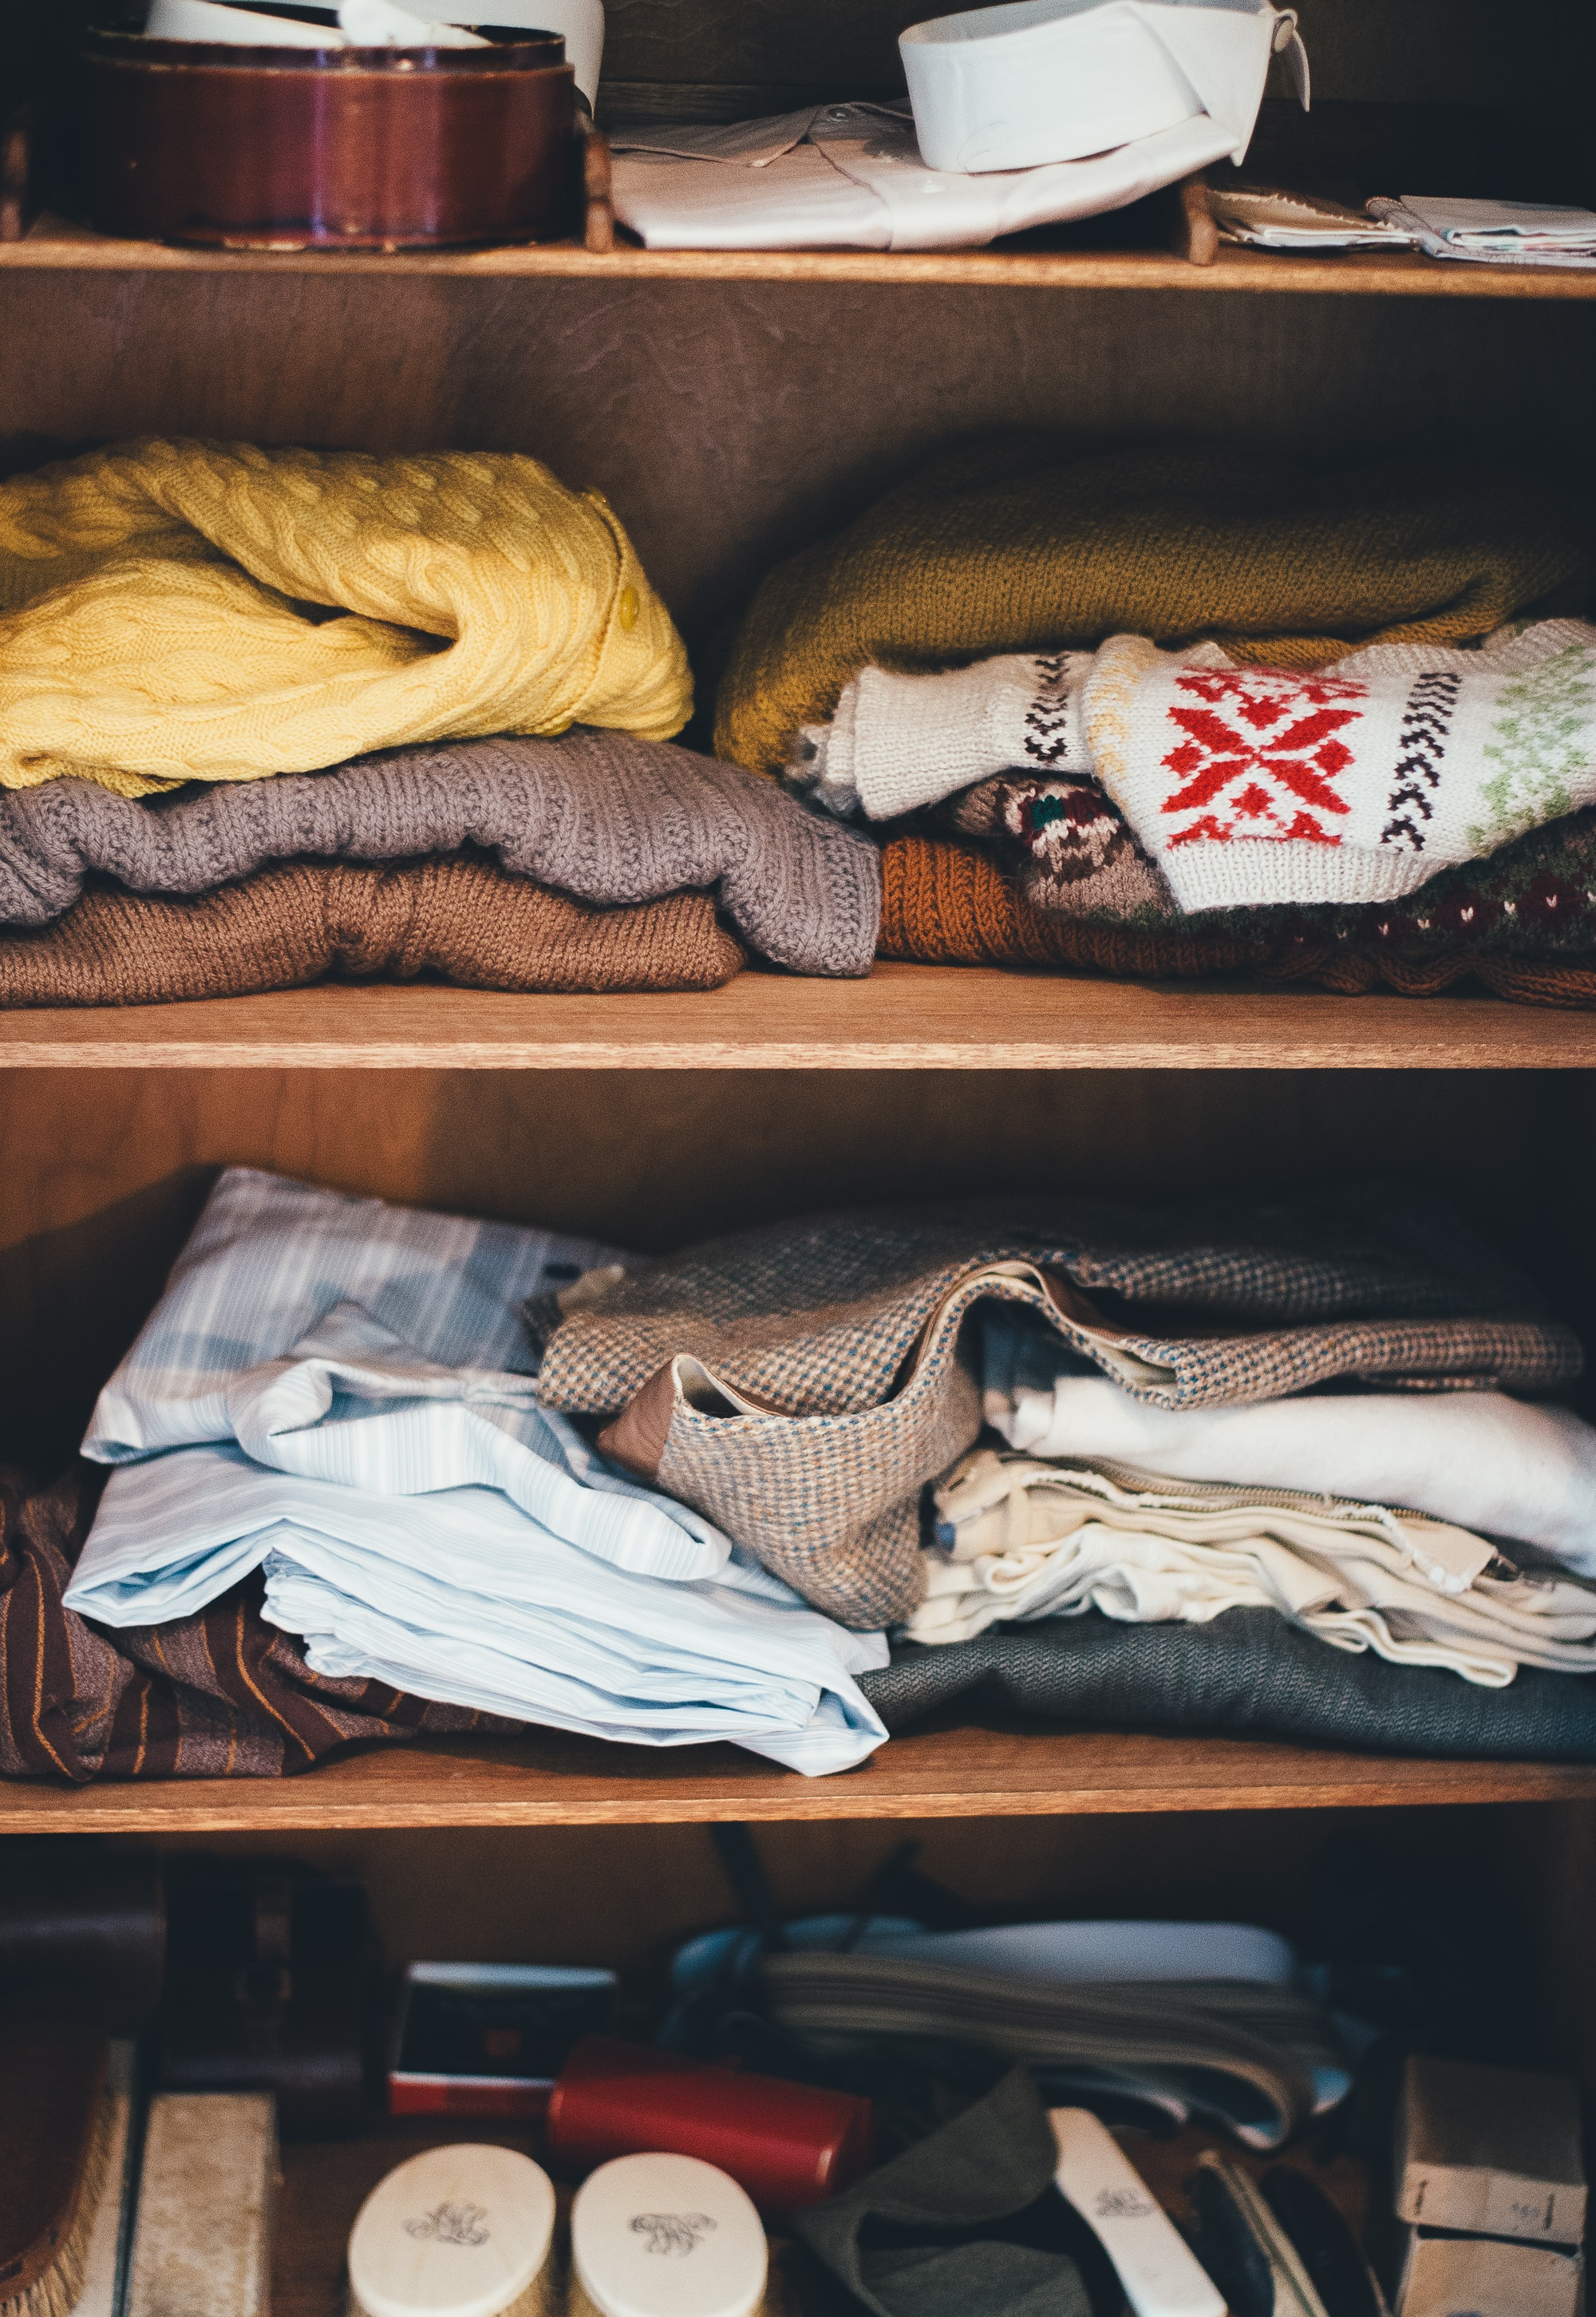 Hospice and organizing: Sorting Clothes. My personal experience